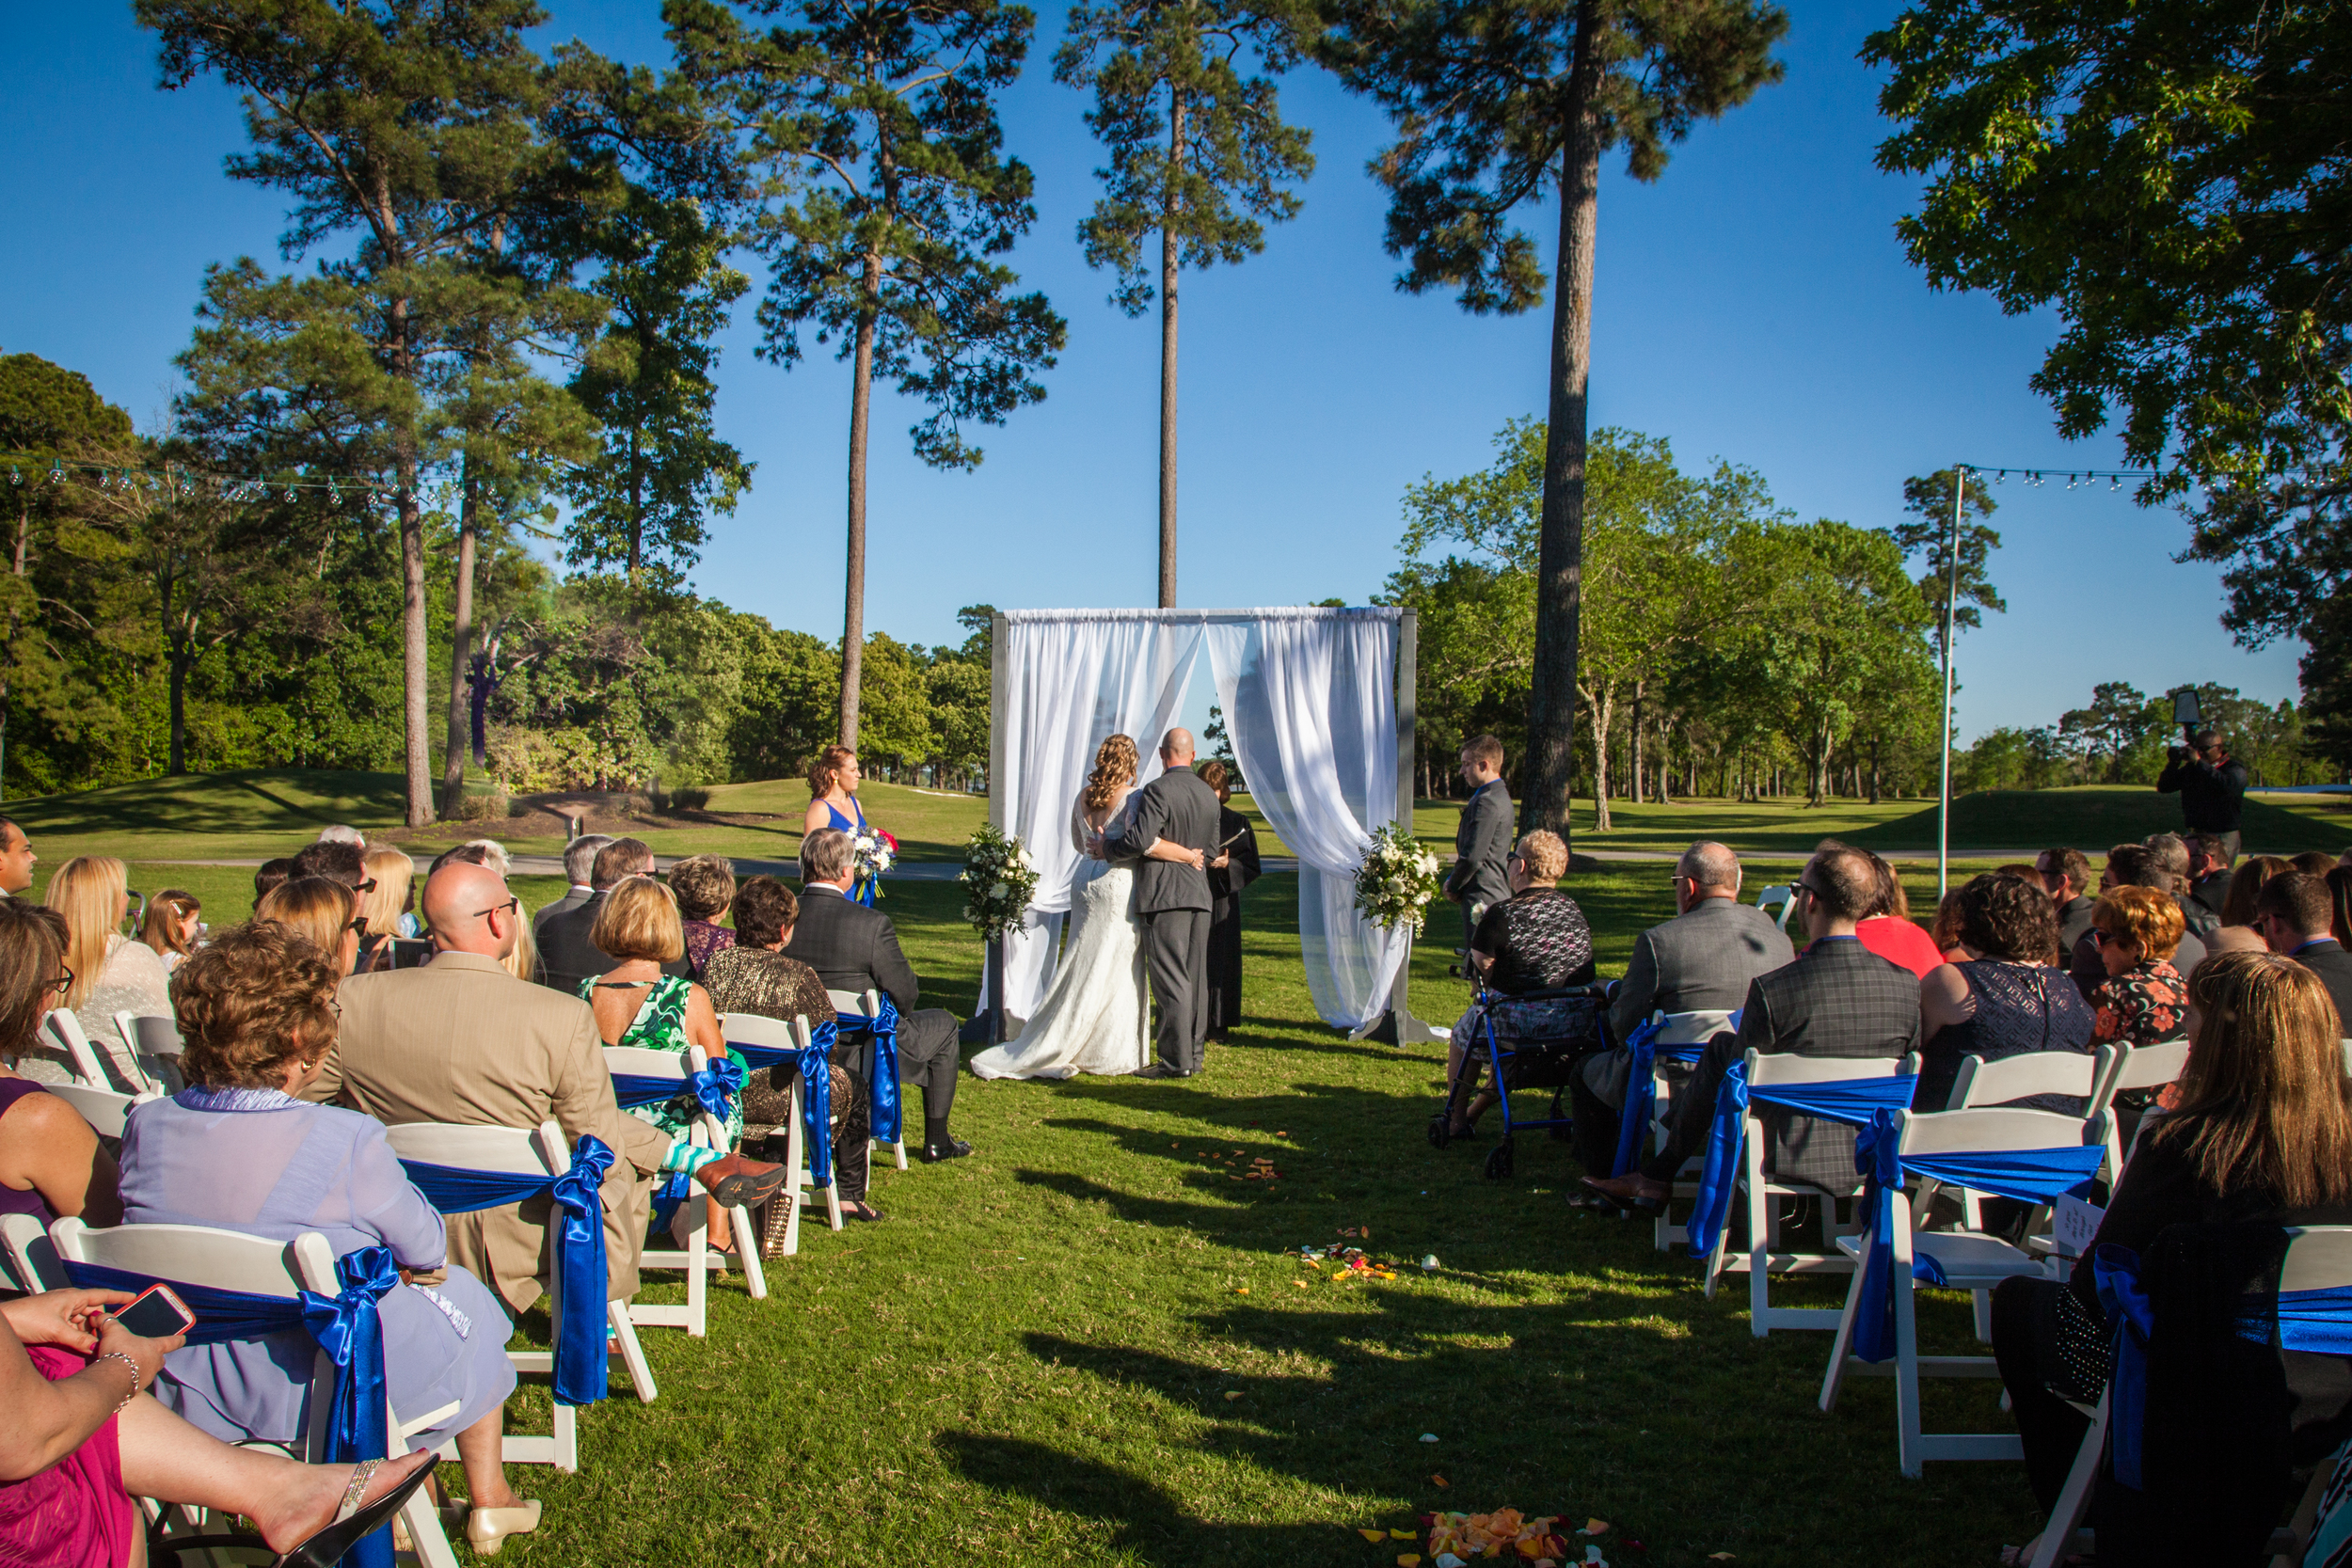 Beautiful wedding with clear blue skies and green grass at the Kingwood venue.